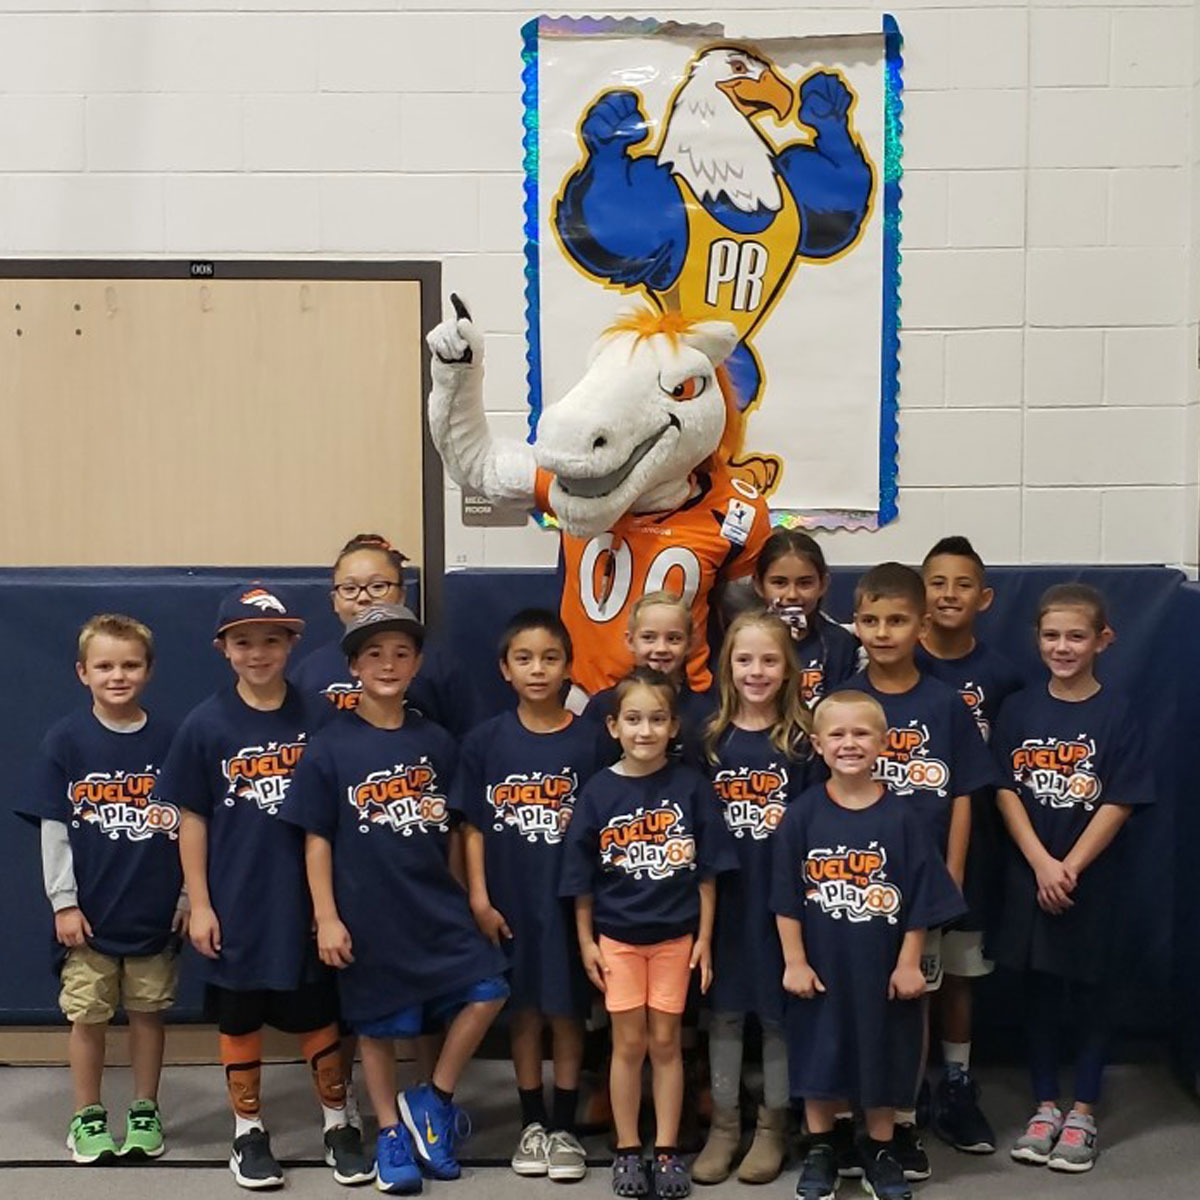 elementary students standing with Miles the mascot in a gym